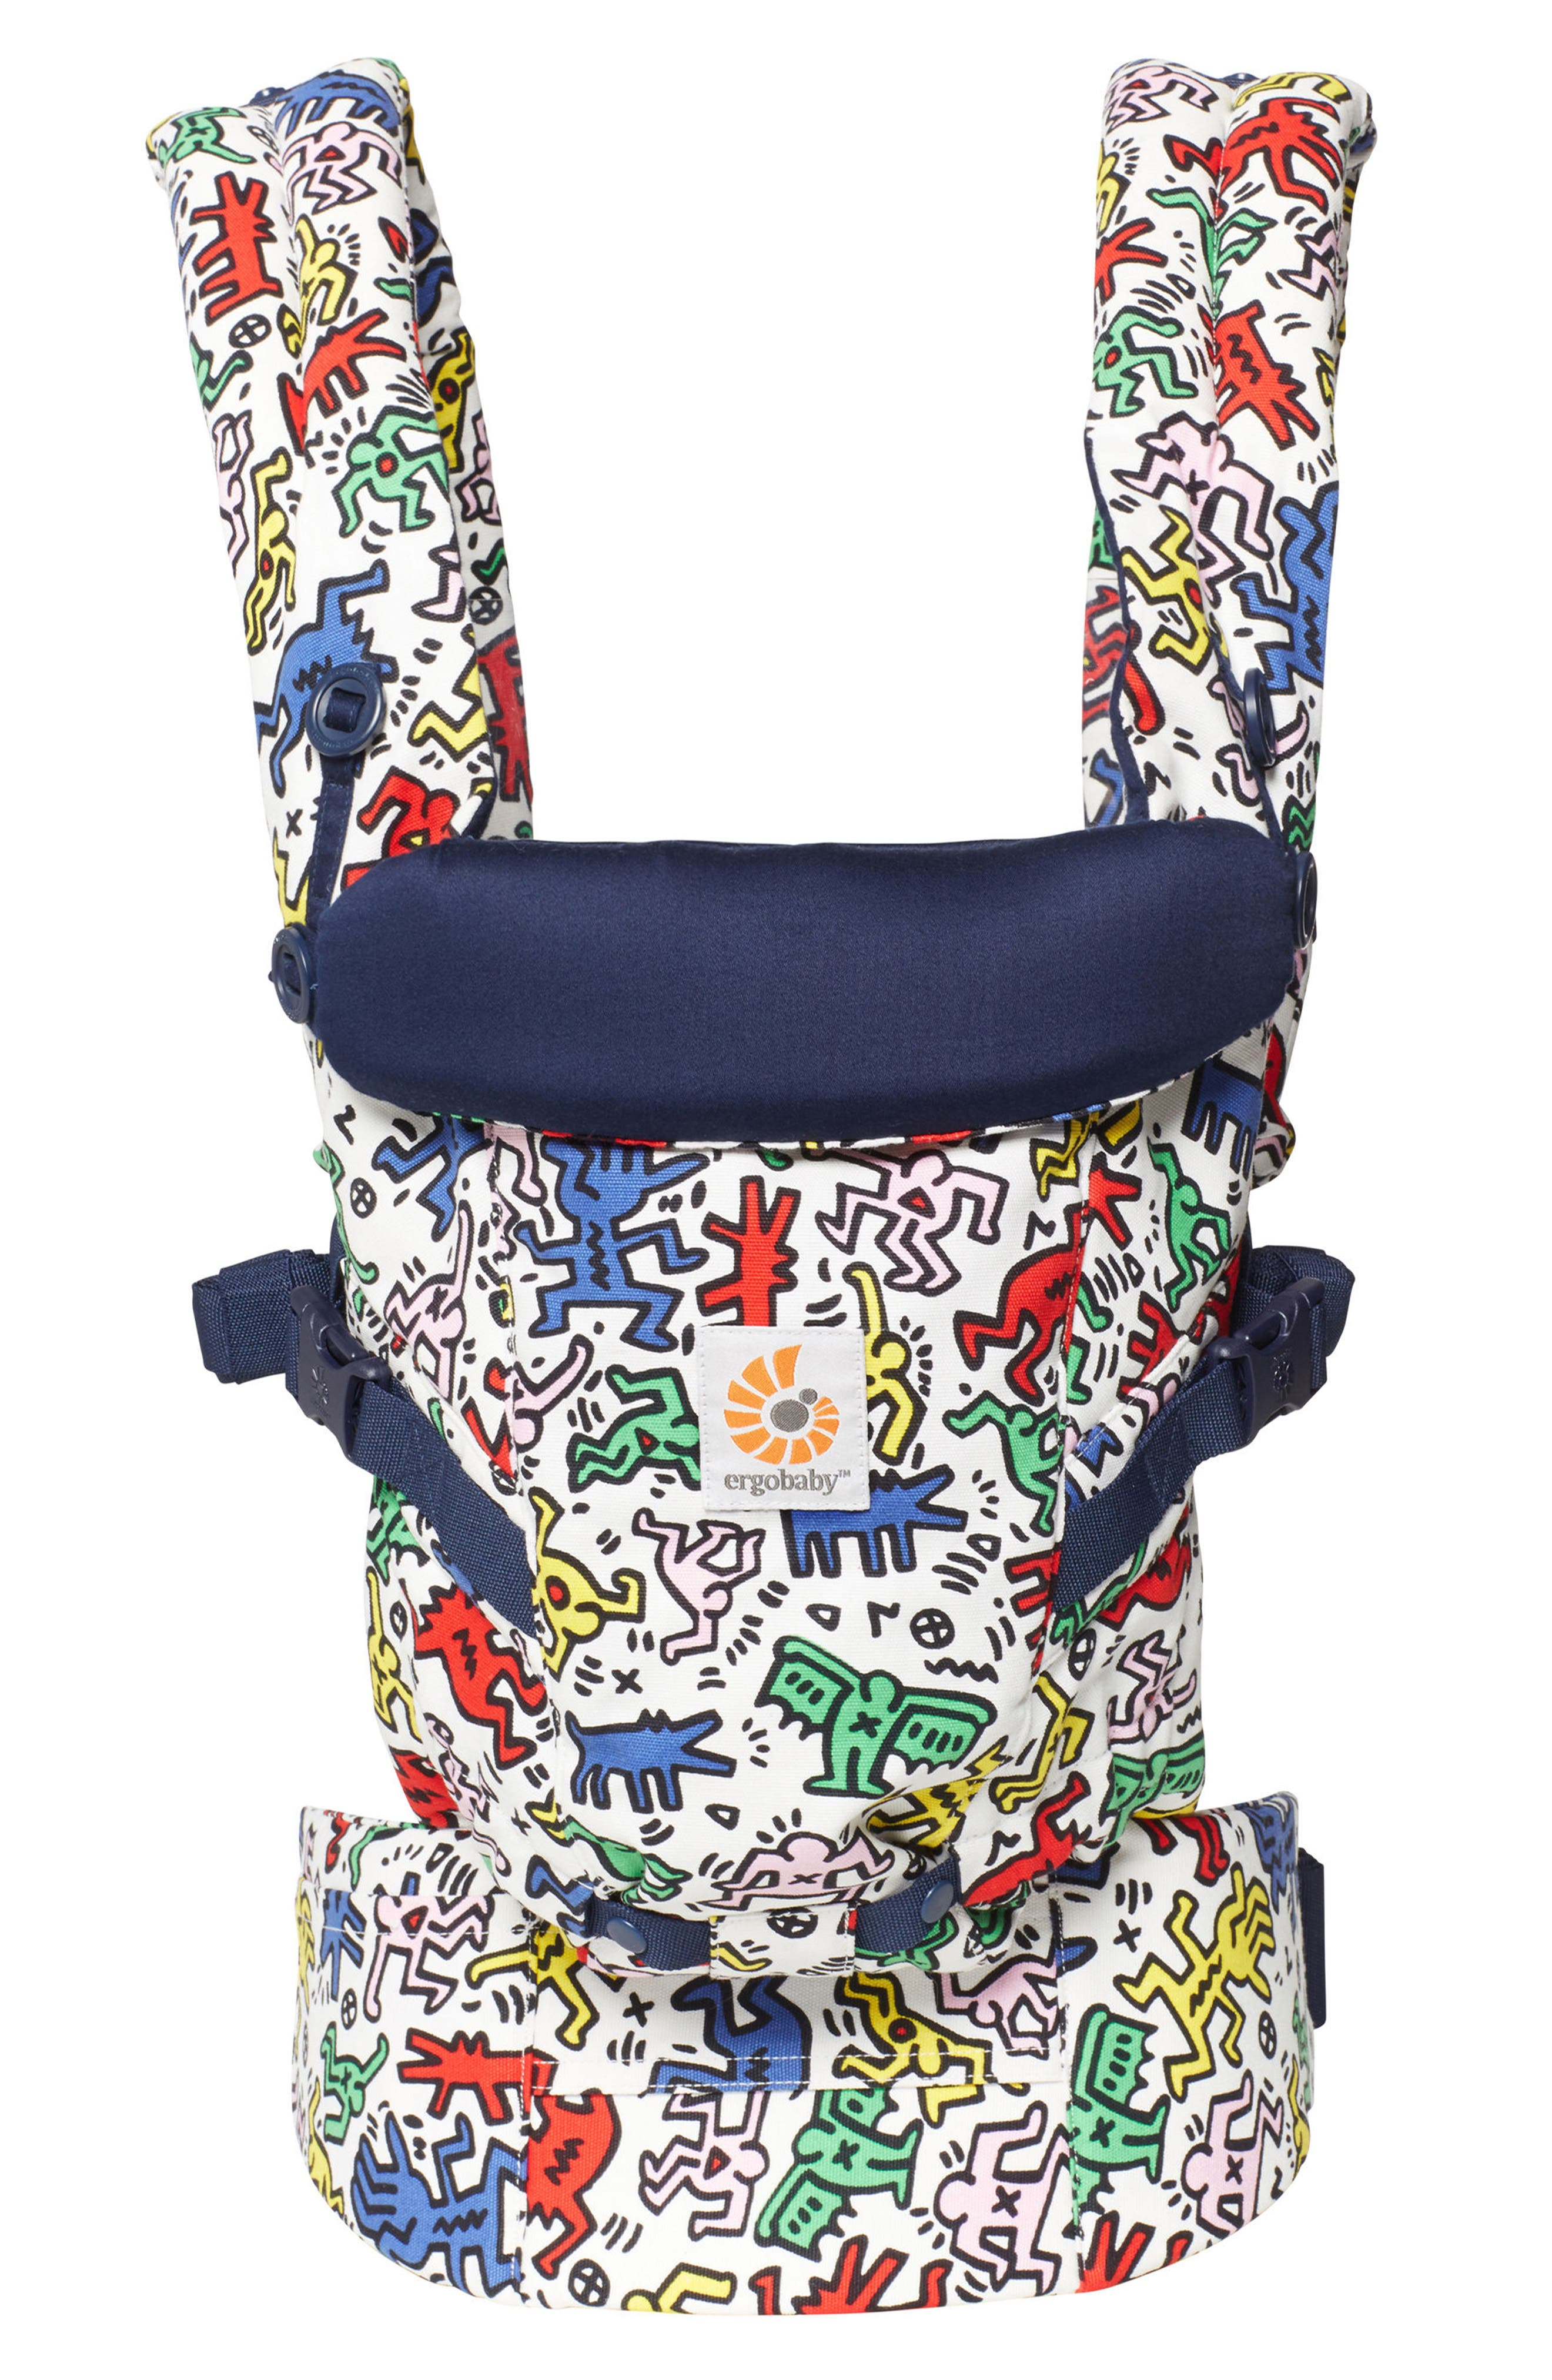 Alternate Image 1 Selected - ERGObaby Special Edition Keith Haring Three Position ADAPT Baby Carrier